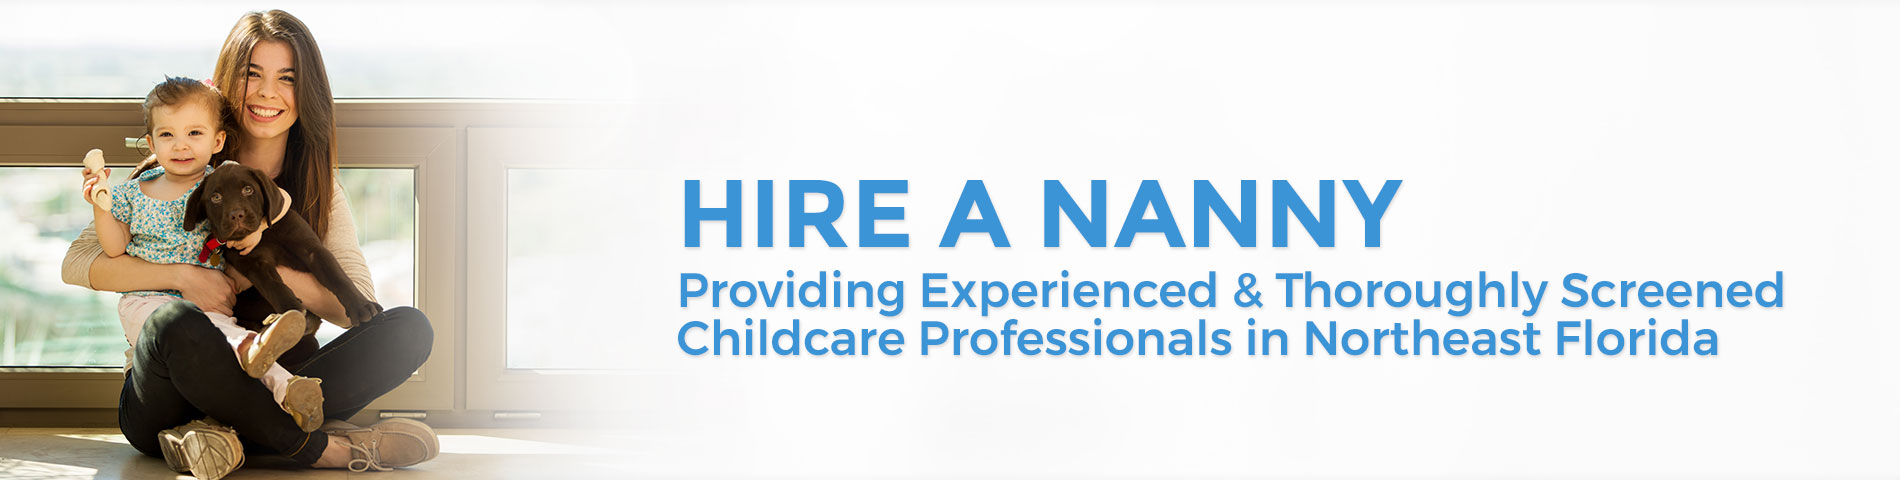 Hire A Nanny / Inquiries